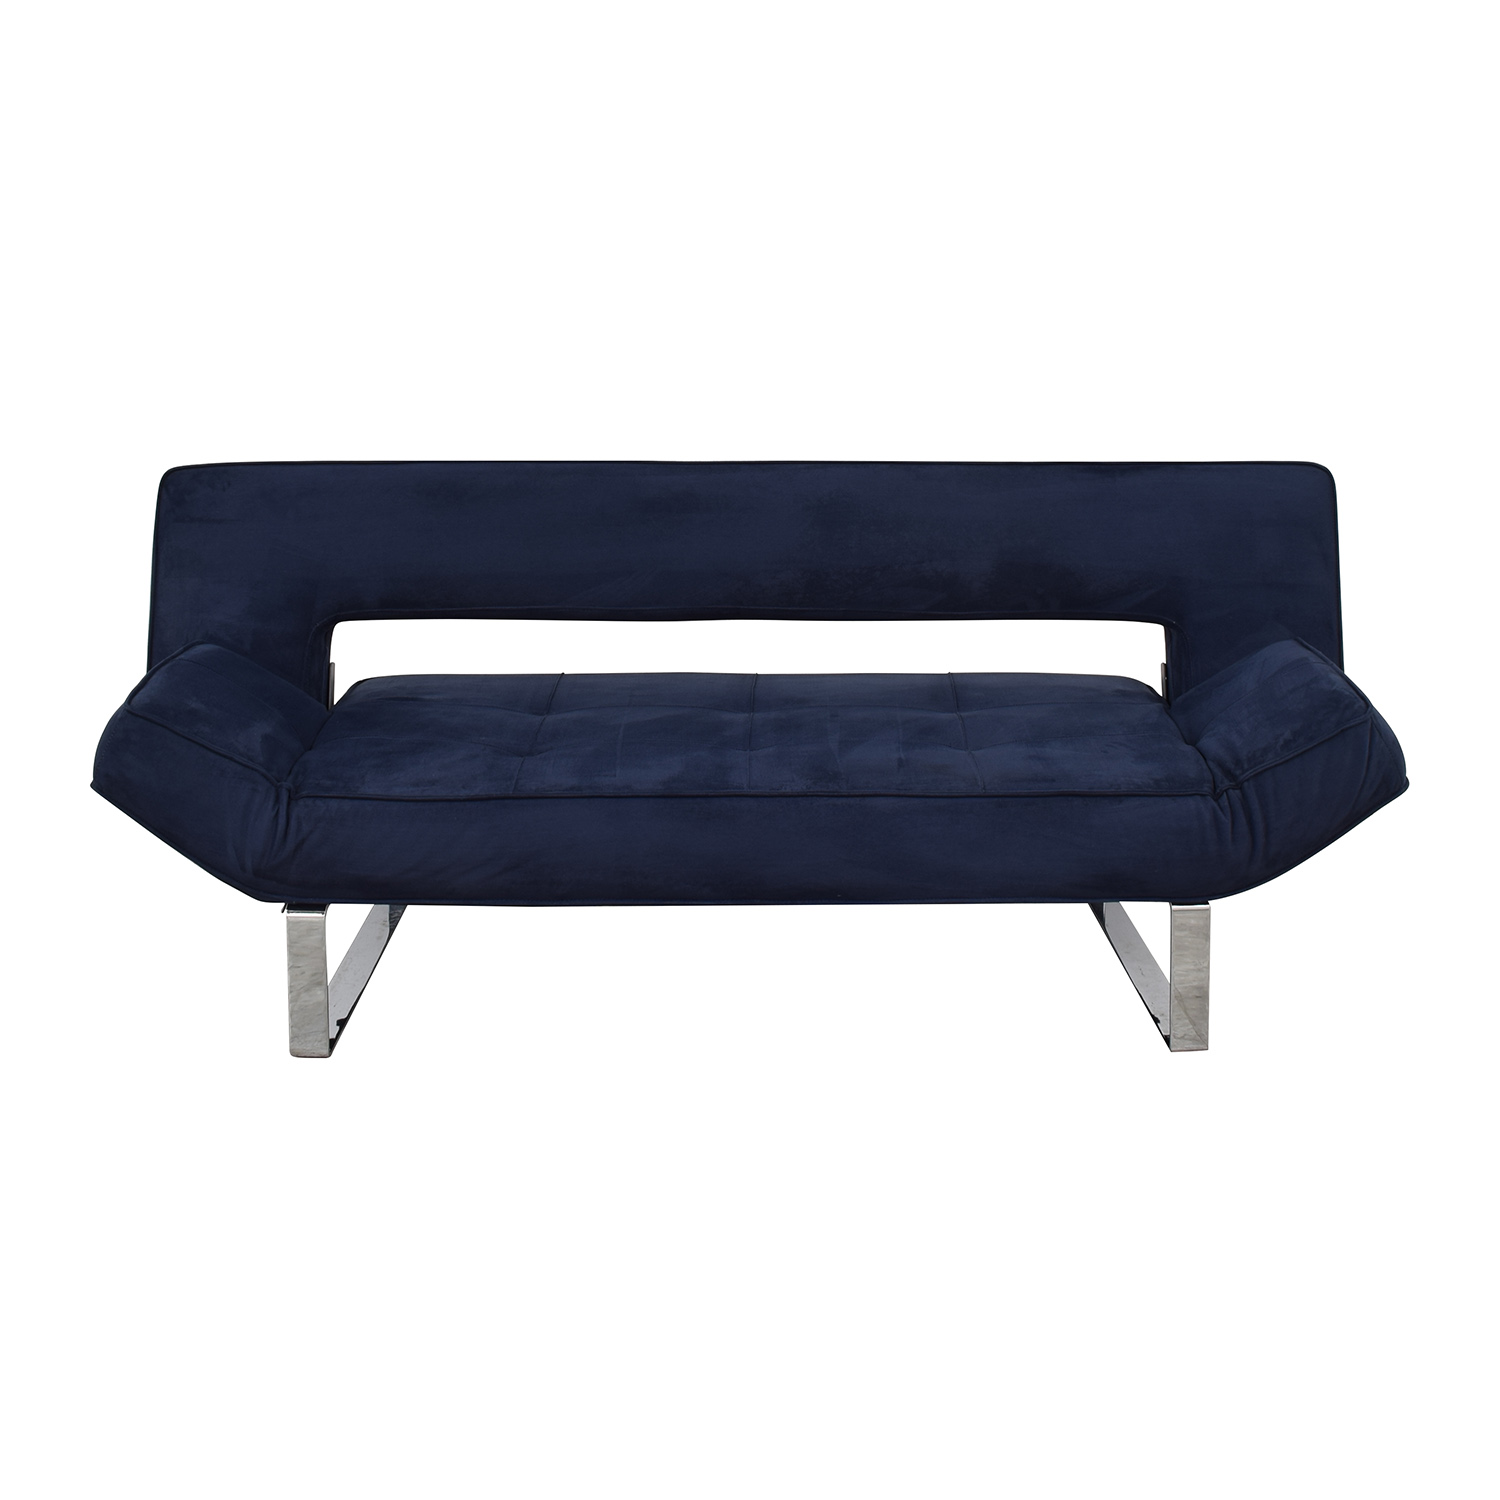 shop  IDO Navy Blue Convertible Sofa online